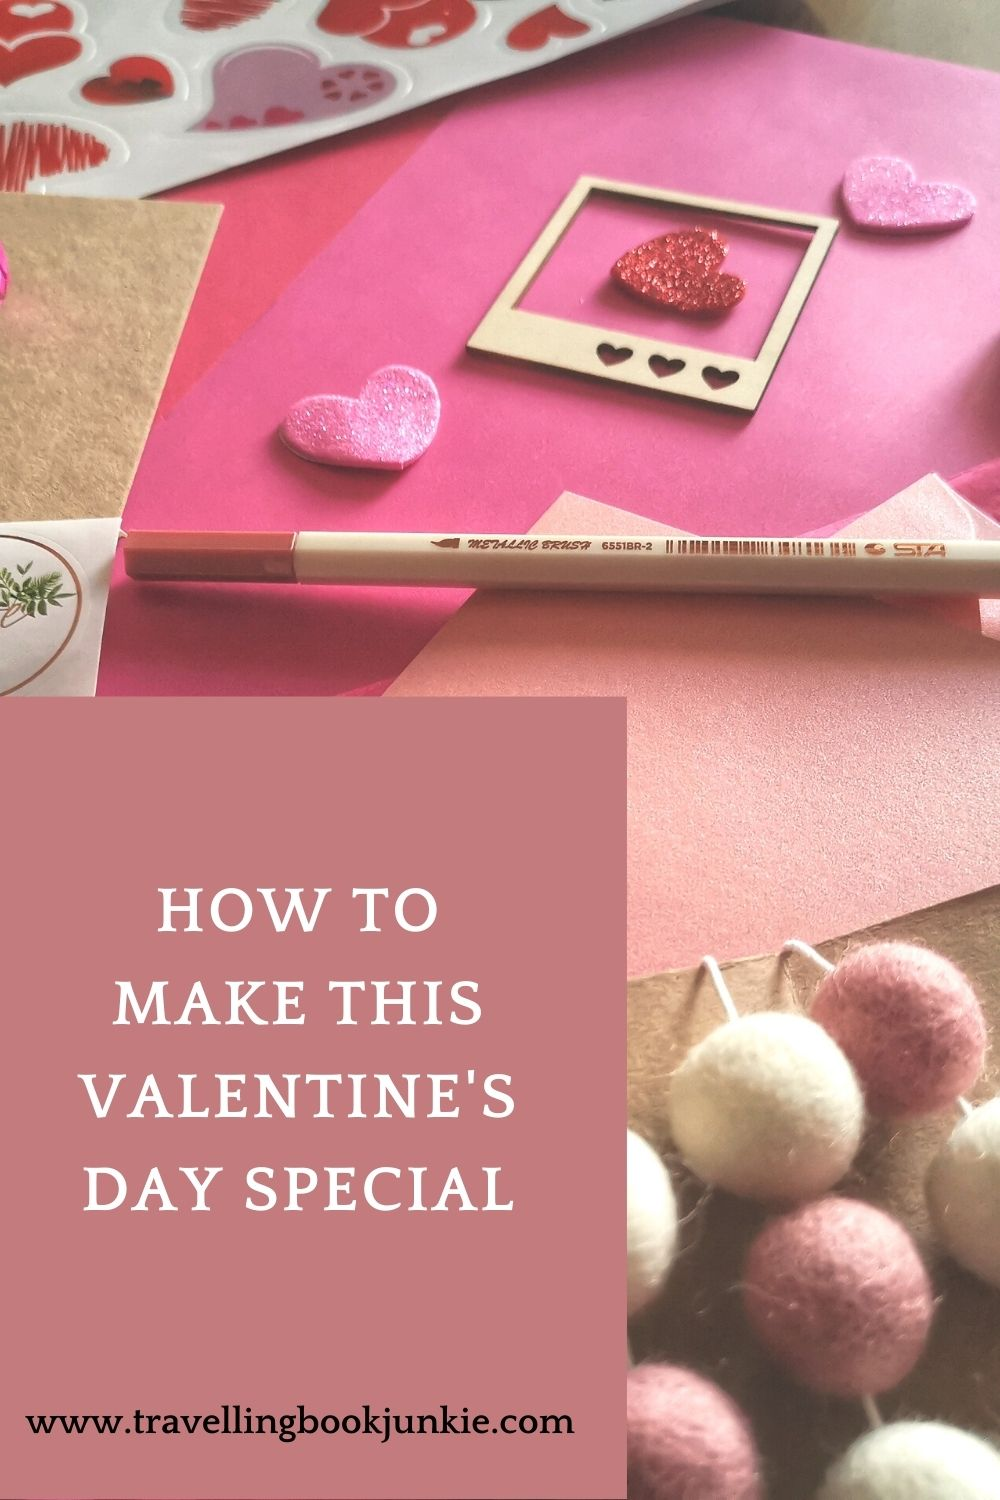 Looking for ideas this Valentine's Day? What to create something for your loved one? Don't let lockdown stop you from celebrating your love for one another. Via @tbookjunkie